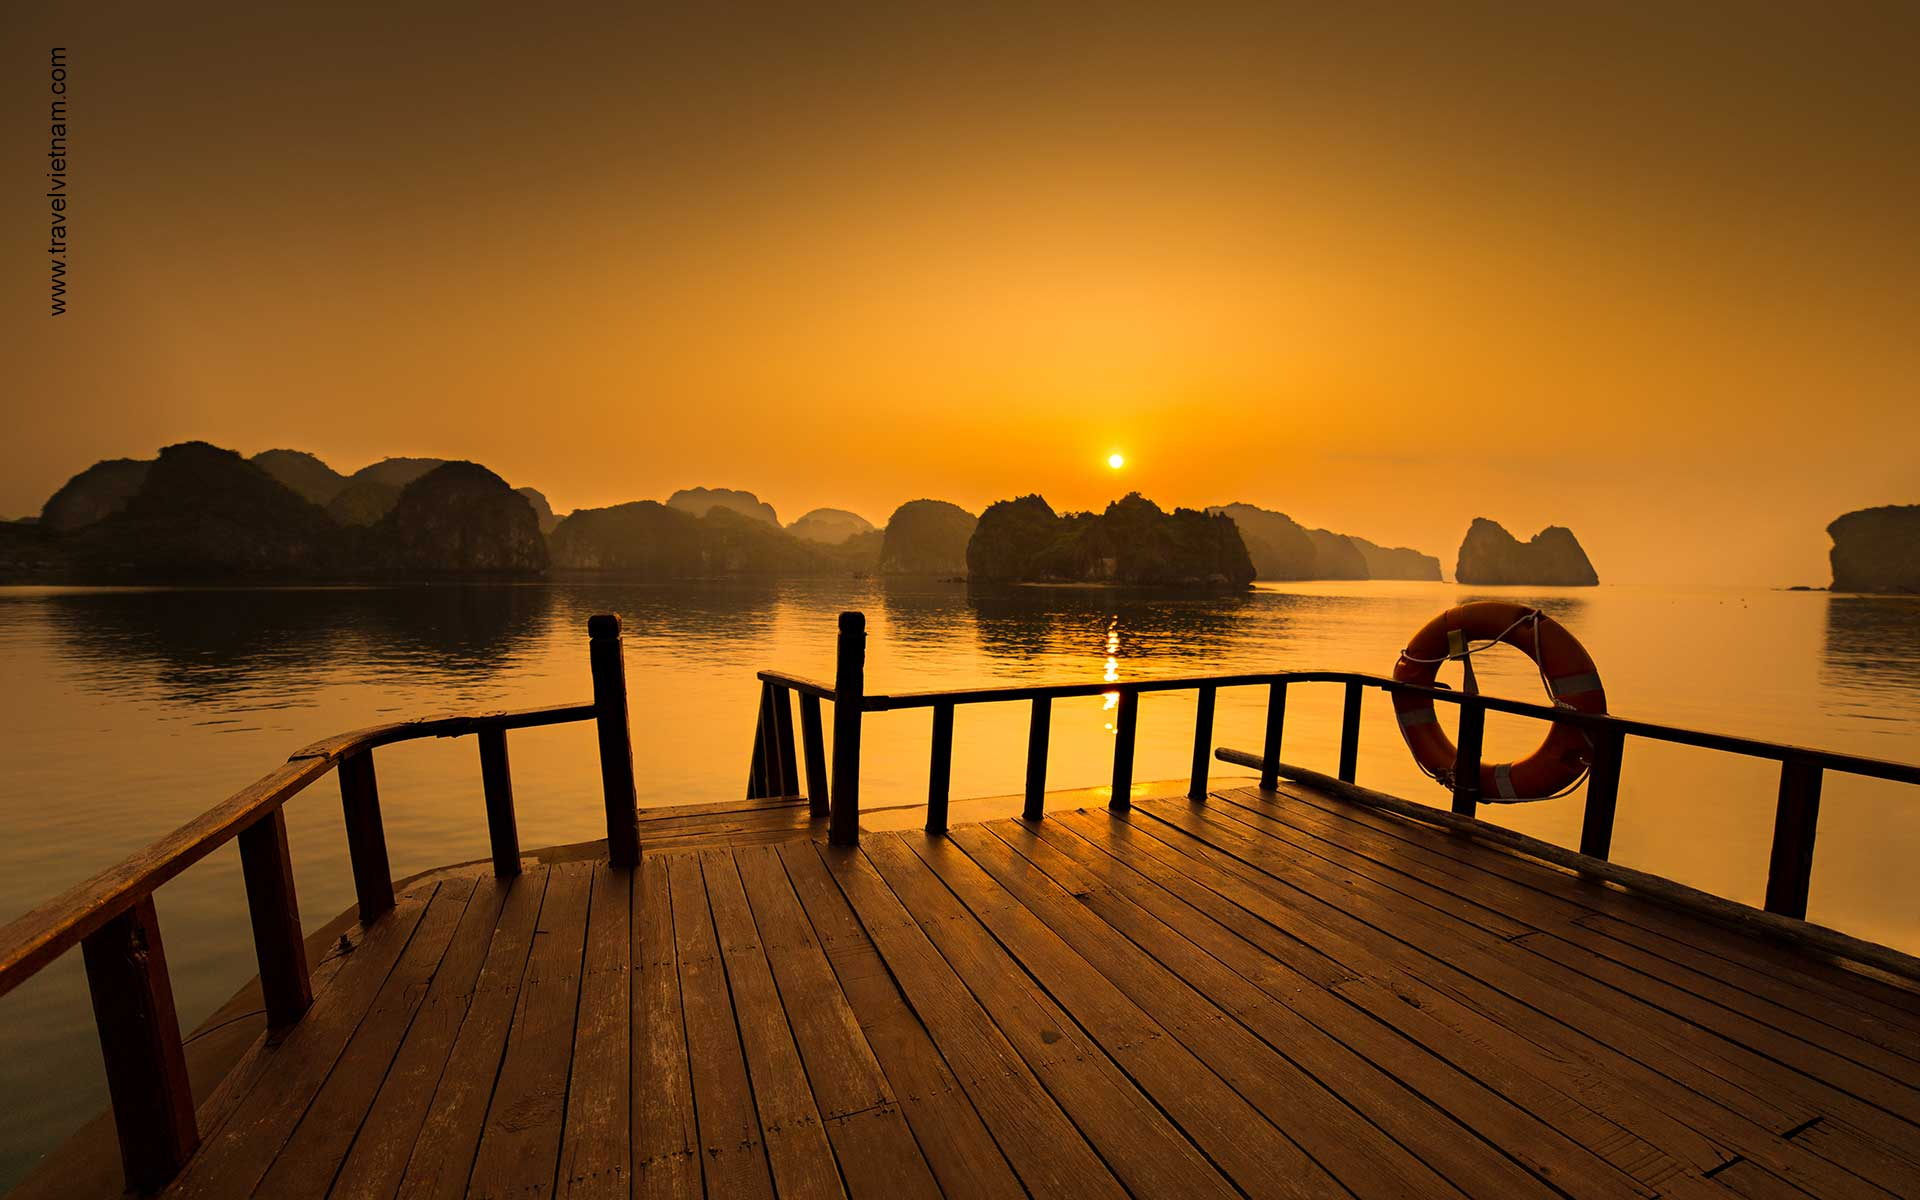 When Is the Best Time to Visit Halong Bay?